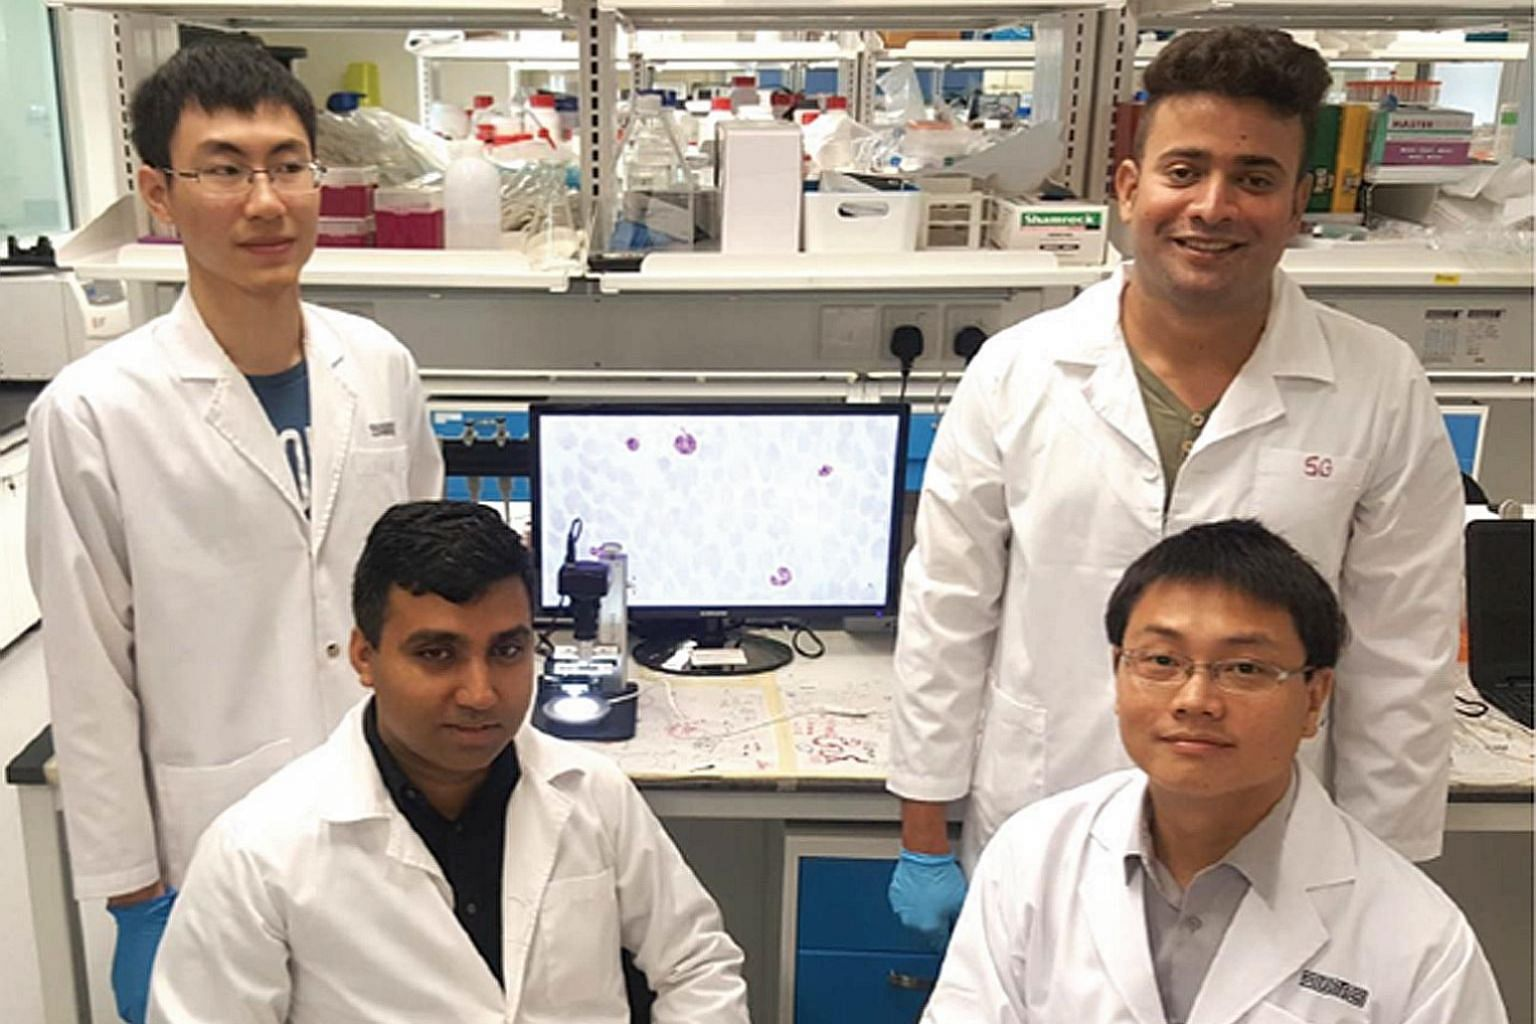 The new cytometer (left) that employs image processing and machine-learning algorithms to count infected blood cells digitally is developed by an SUTD team comprising (anticlockwise from bottom right) Dr Ye Ai, Dr Rajesh Chandramohanadas and graduate